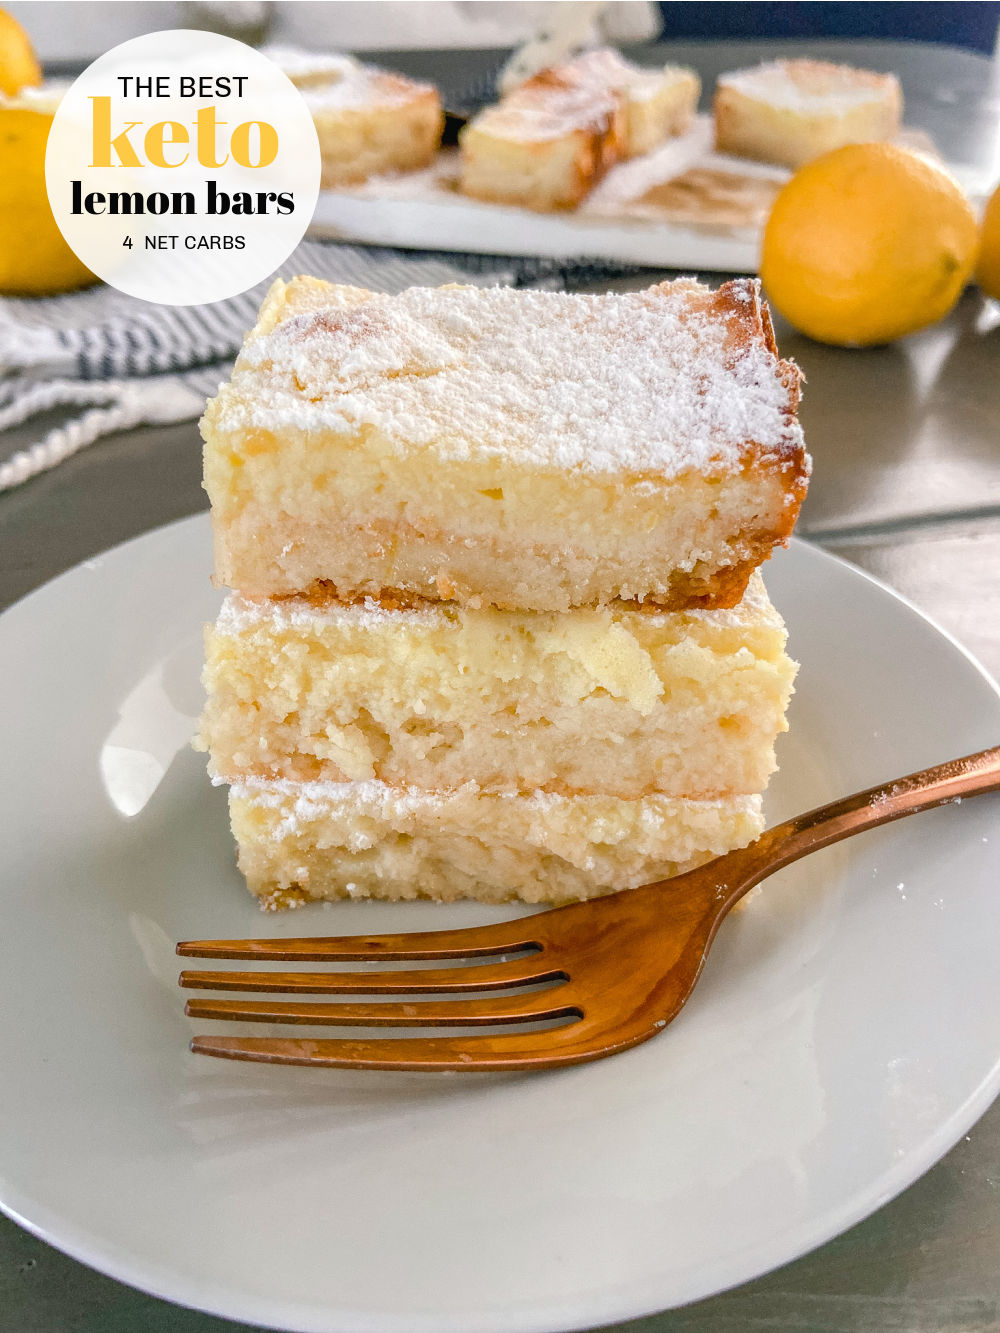 Keto Lemon Bars. These tangy lemon bars are the perfect combination of buttery crust and creamy lemon filling with only 4 net carbs!